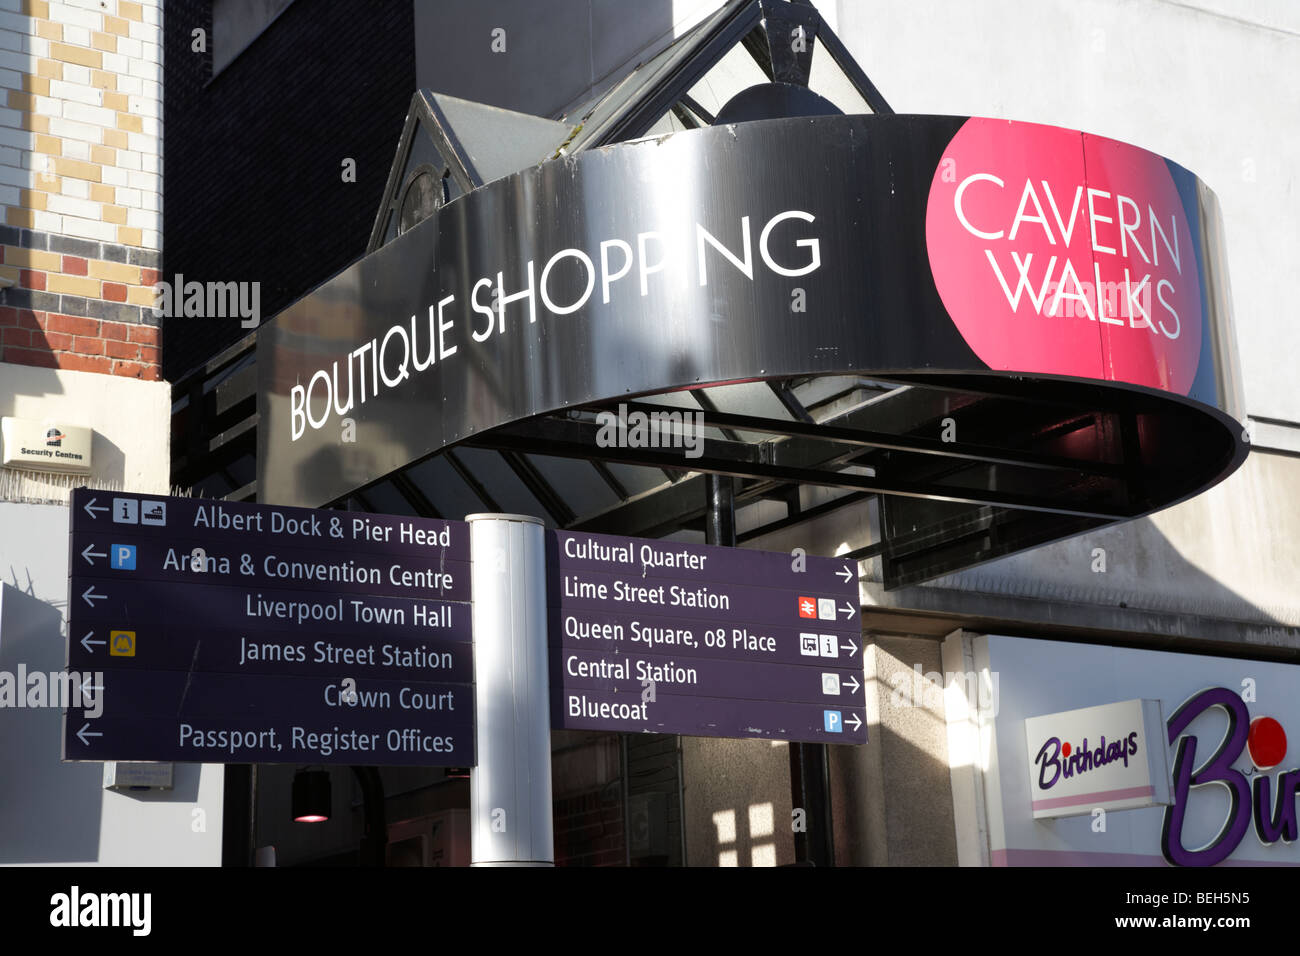 cavern walks boutique shopping arcade centre with tourism direction signs liverpool merseyside england uk - Stock Image